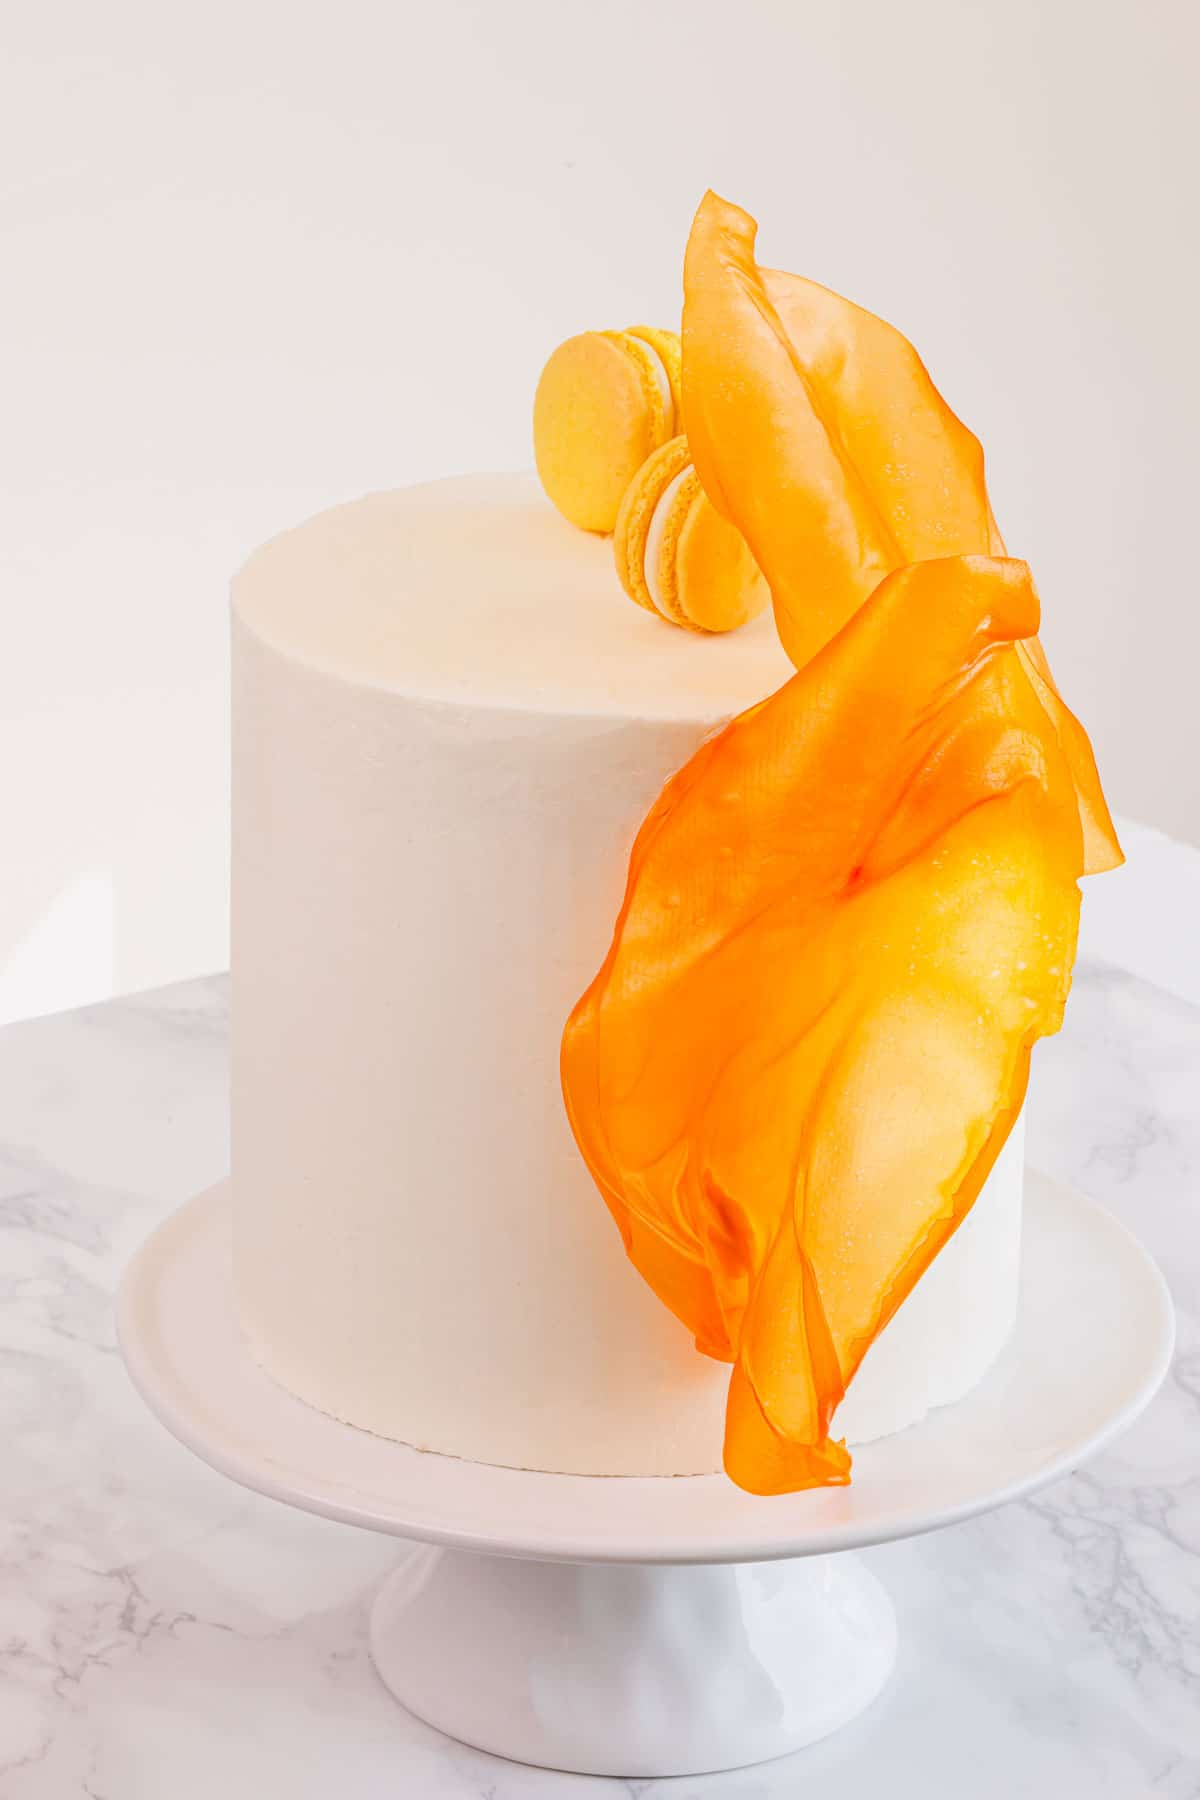 Tall white layer cake decorated with orange rice paper sails and macarons on a cake stand.